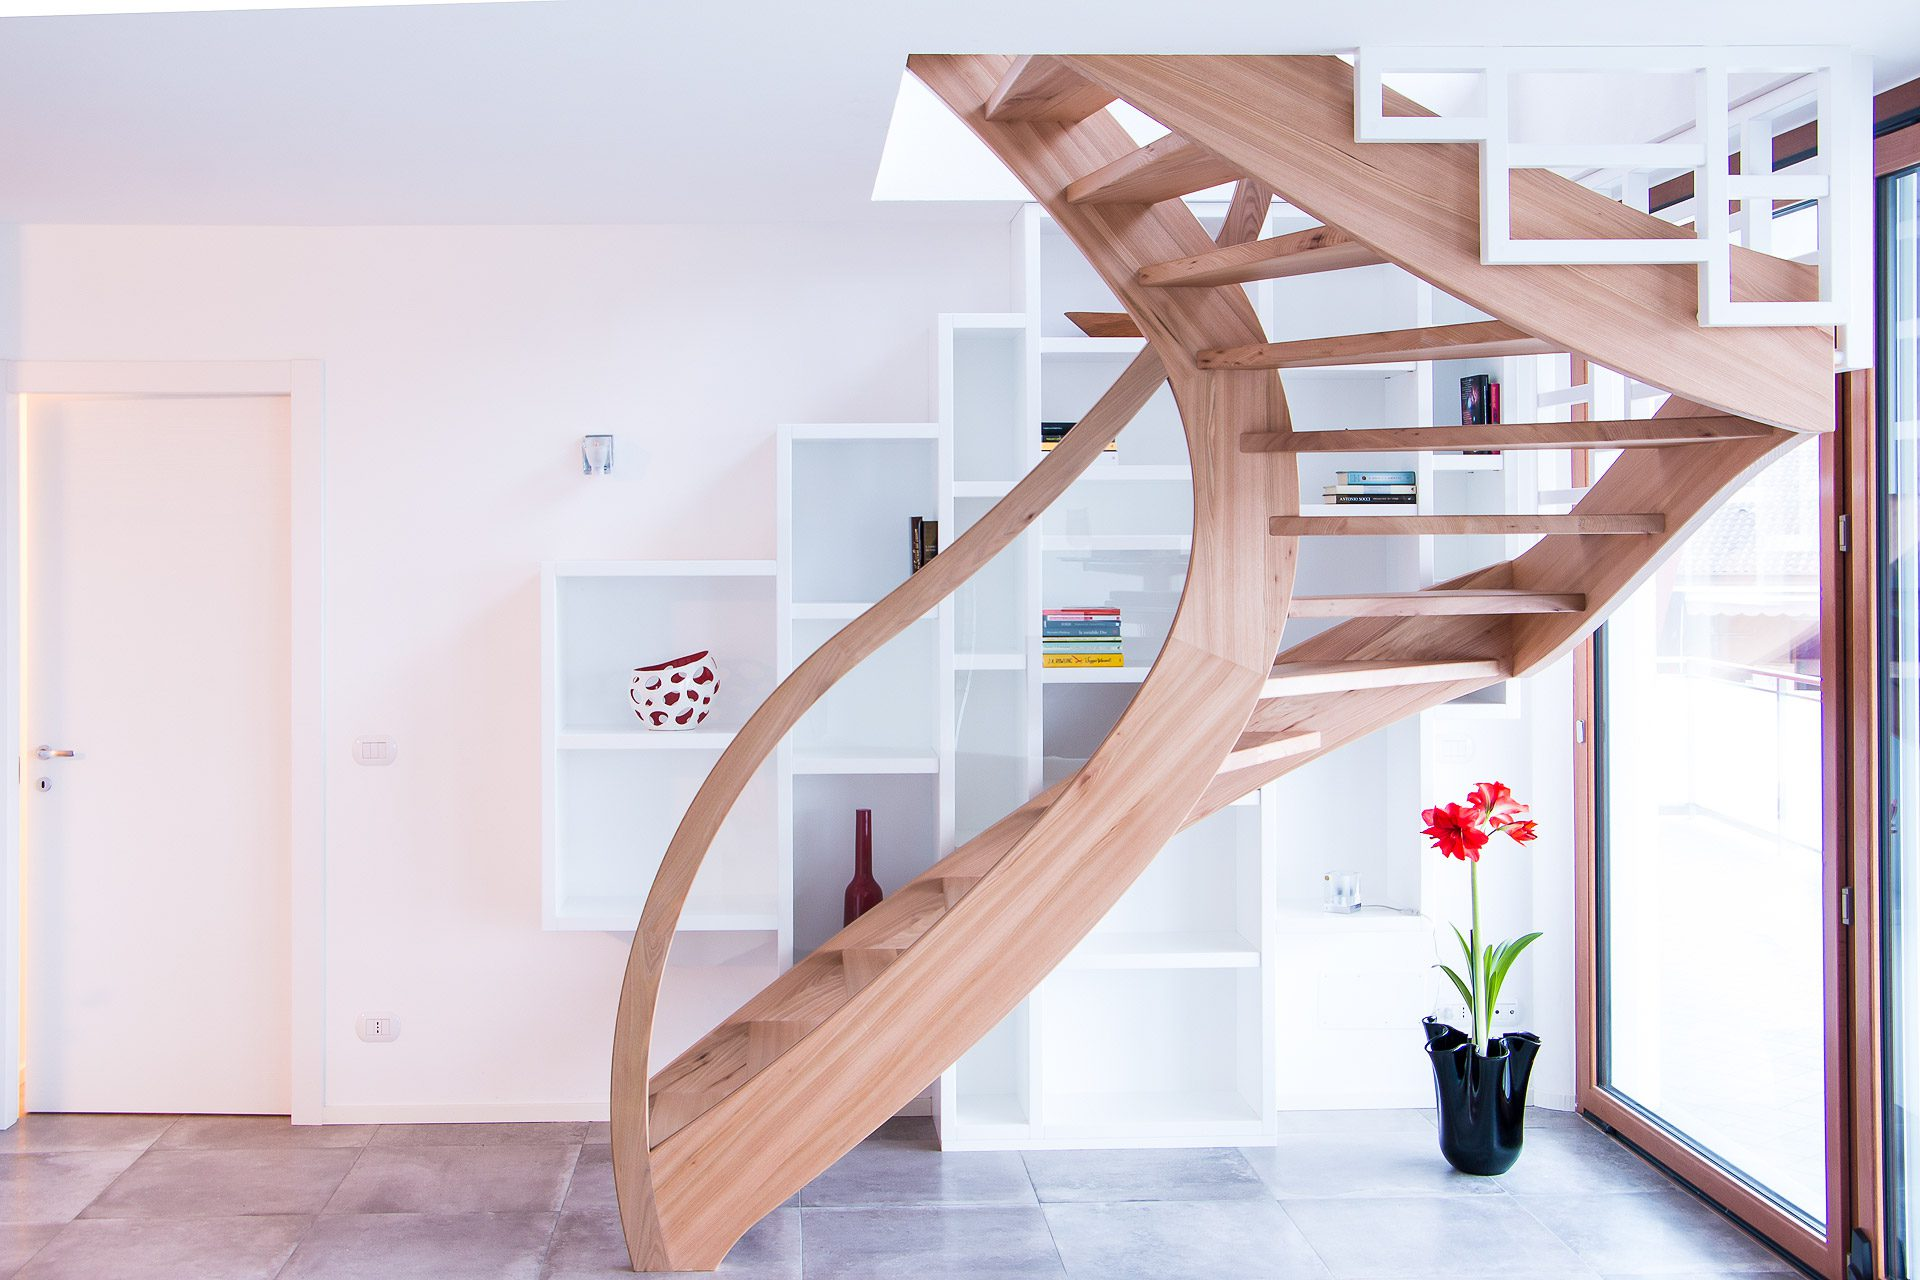 Elm self-supporting staircase